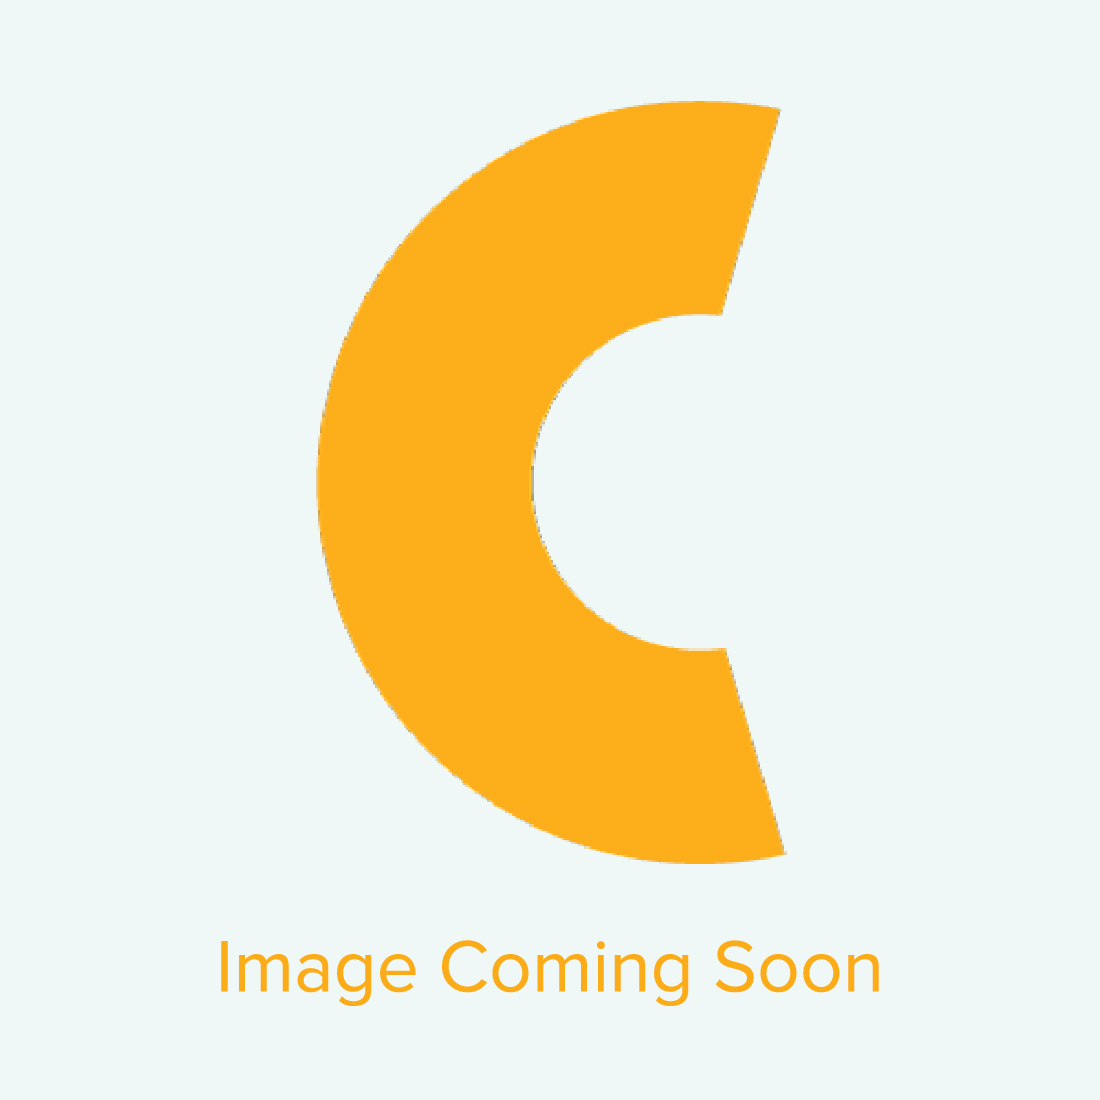 DigiTrans Dark Laser Heat Transfer Paper 8.5 x 11 - 5 Sheet Sample Pack